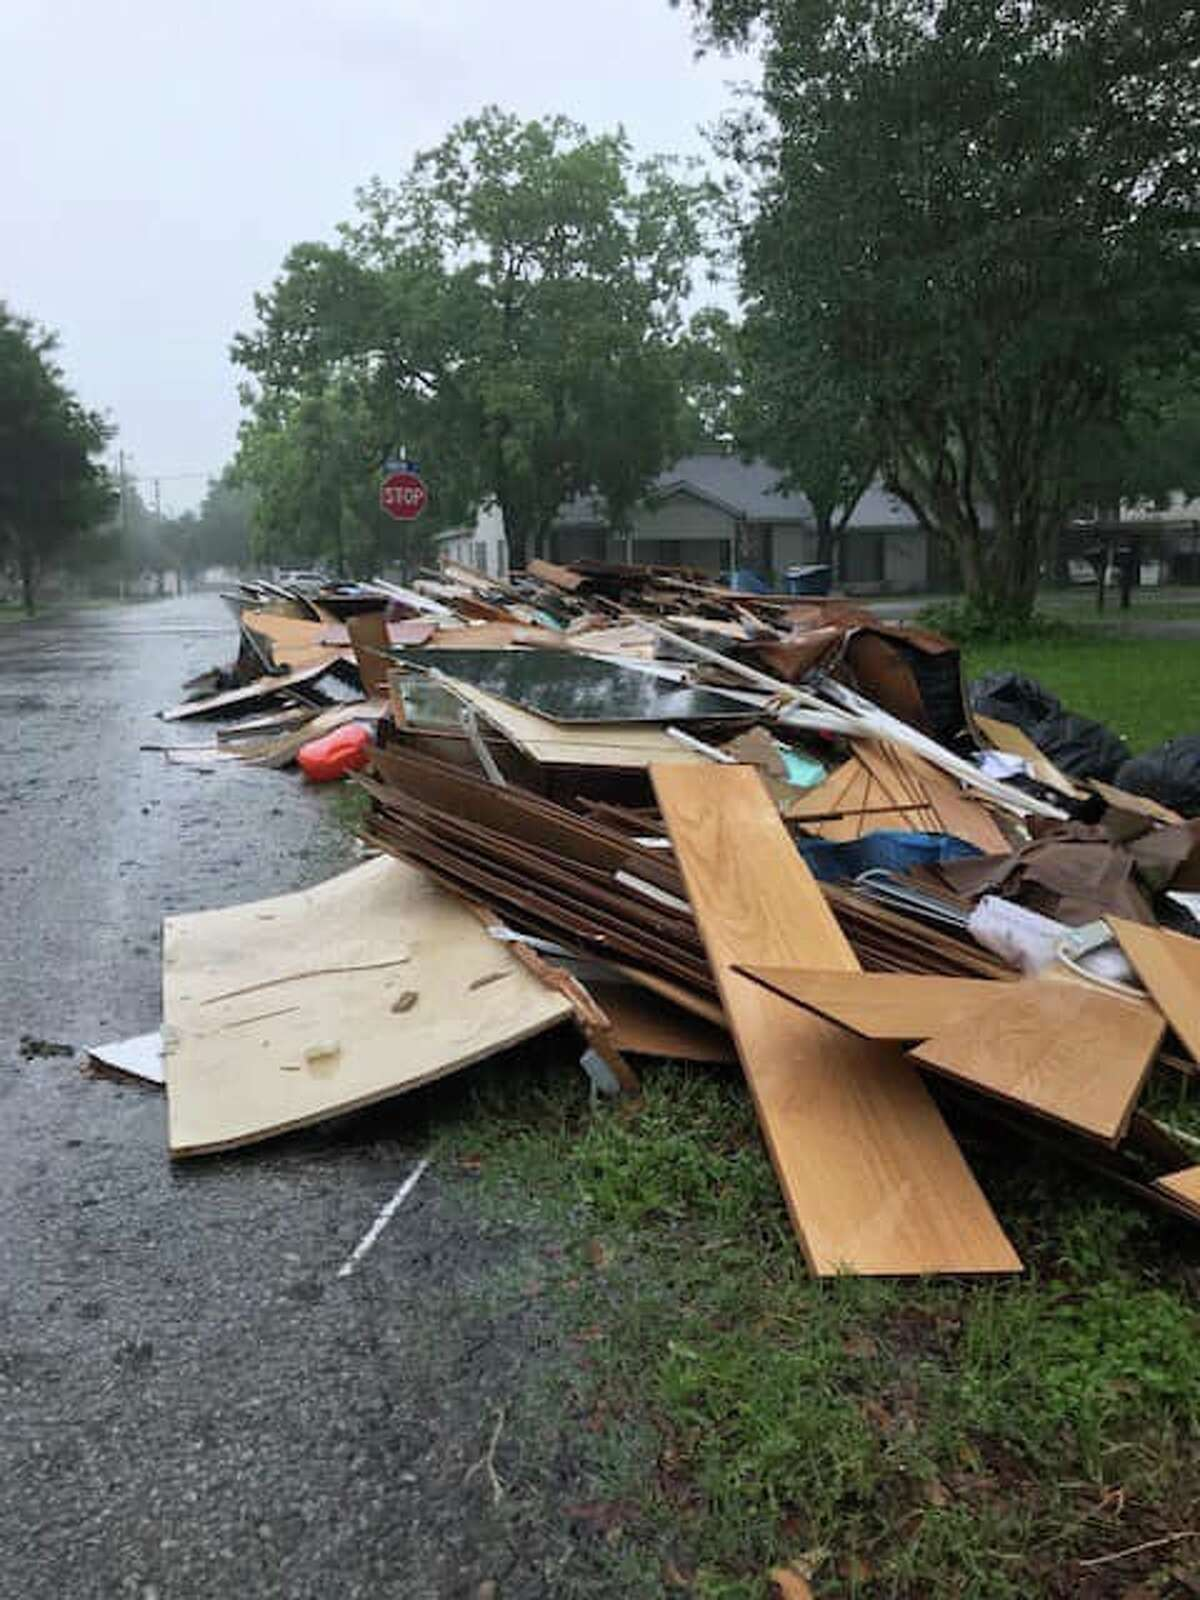 Commissioner Vincent Morales, Constable Mike Beard and Mayor-Elect Andrew Bohac surveyed the damage and high water levels on Saturday, May 11, in the hardest hit parts of Needville.